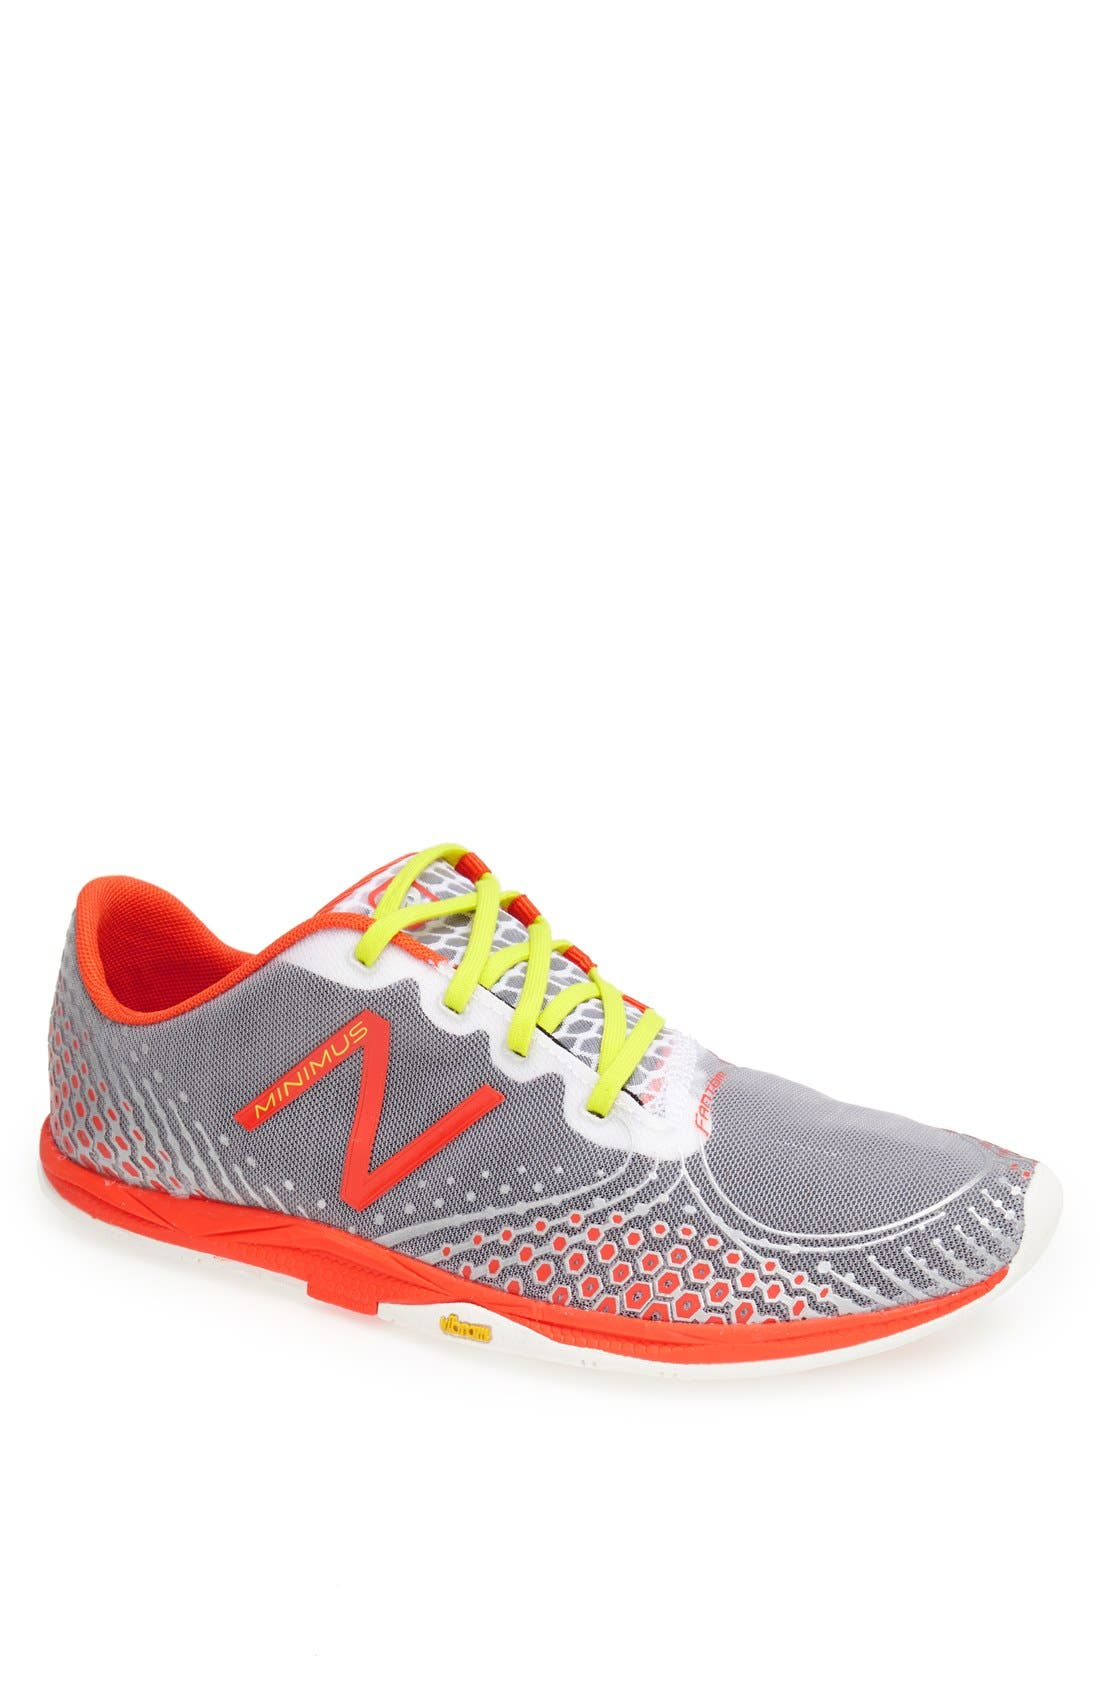 Main Image - New Balance 'ZEROv2' Running Shoe (Men)